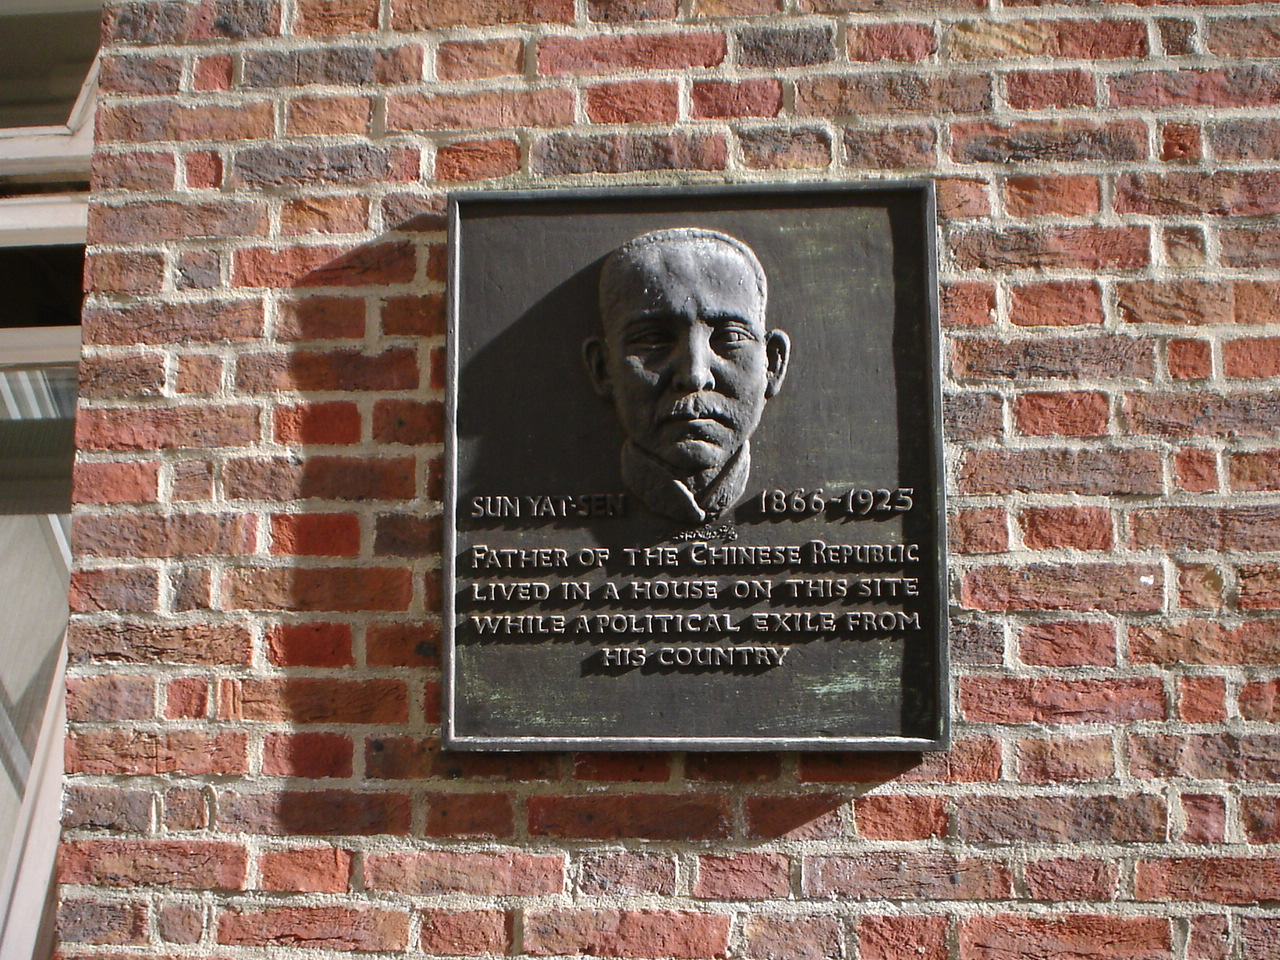 Plaque in London marking the site of a house where Sun Yat-sen lived while in exile